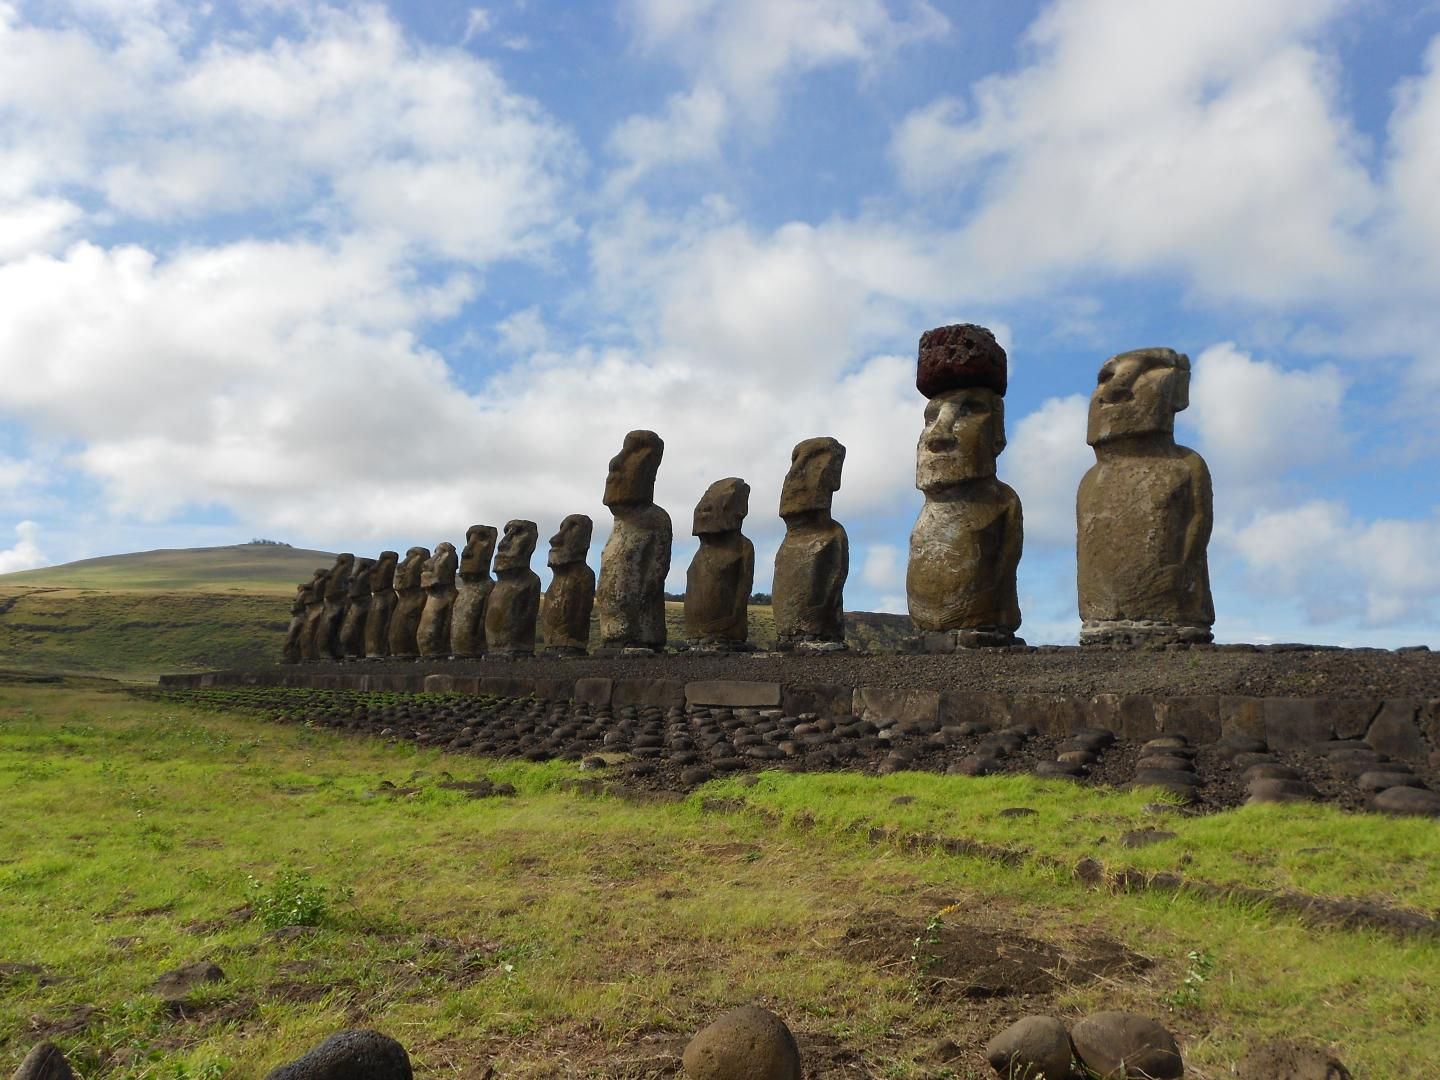 This is a restoredstatueplatform with standing moai on the south coastofRapa Nui.